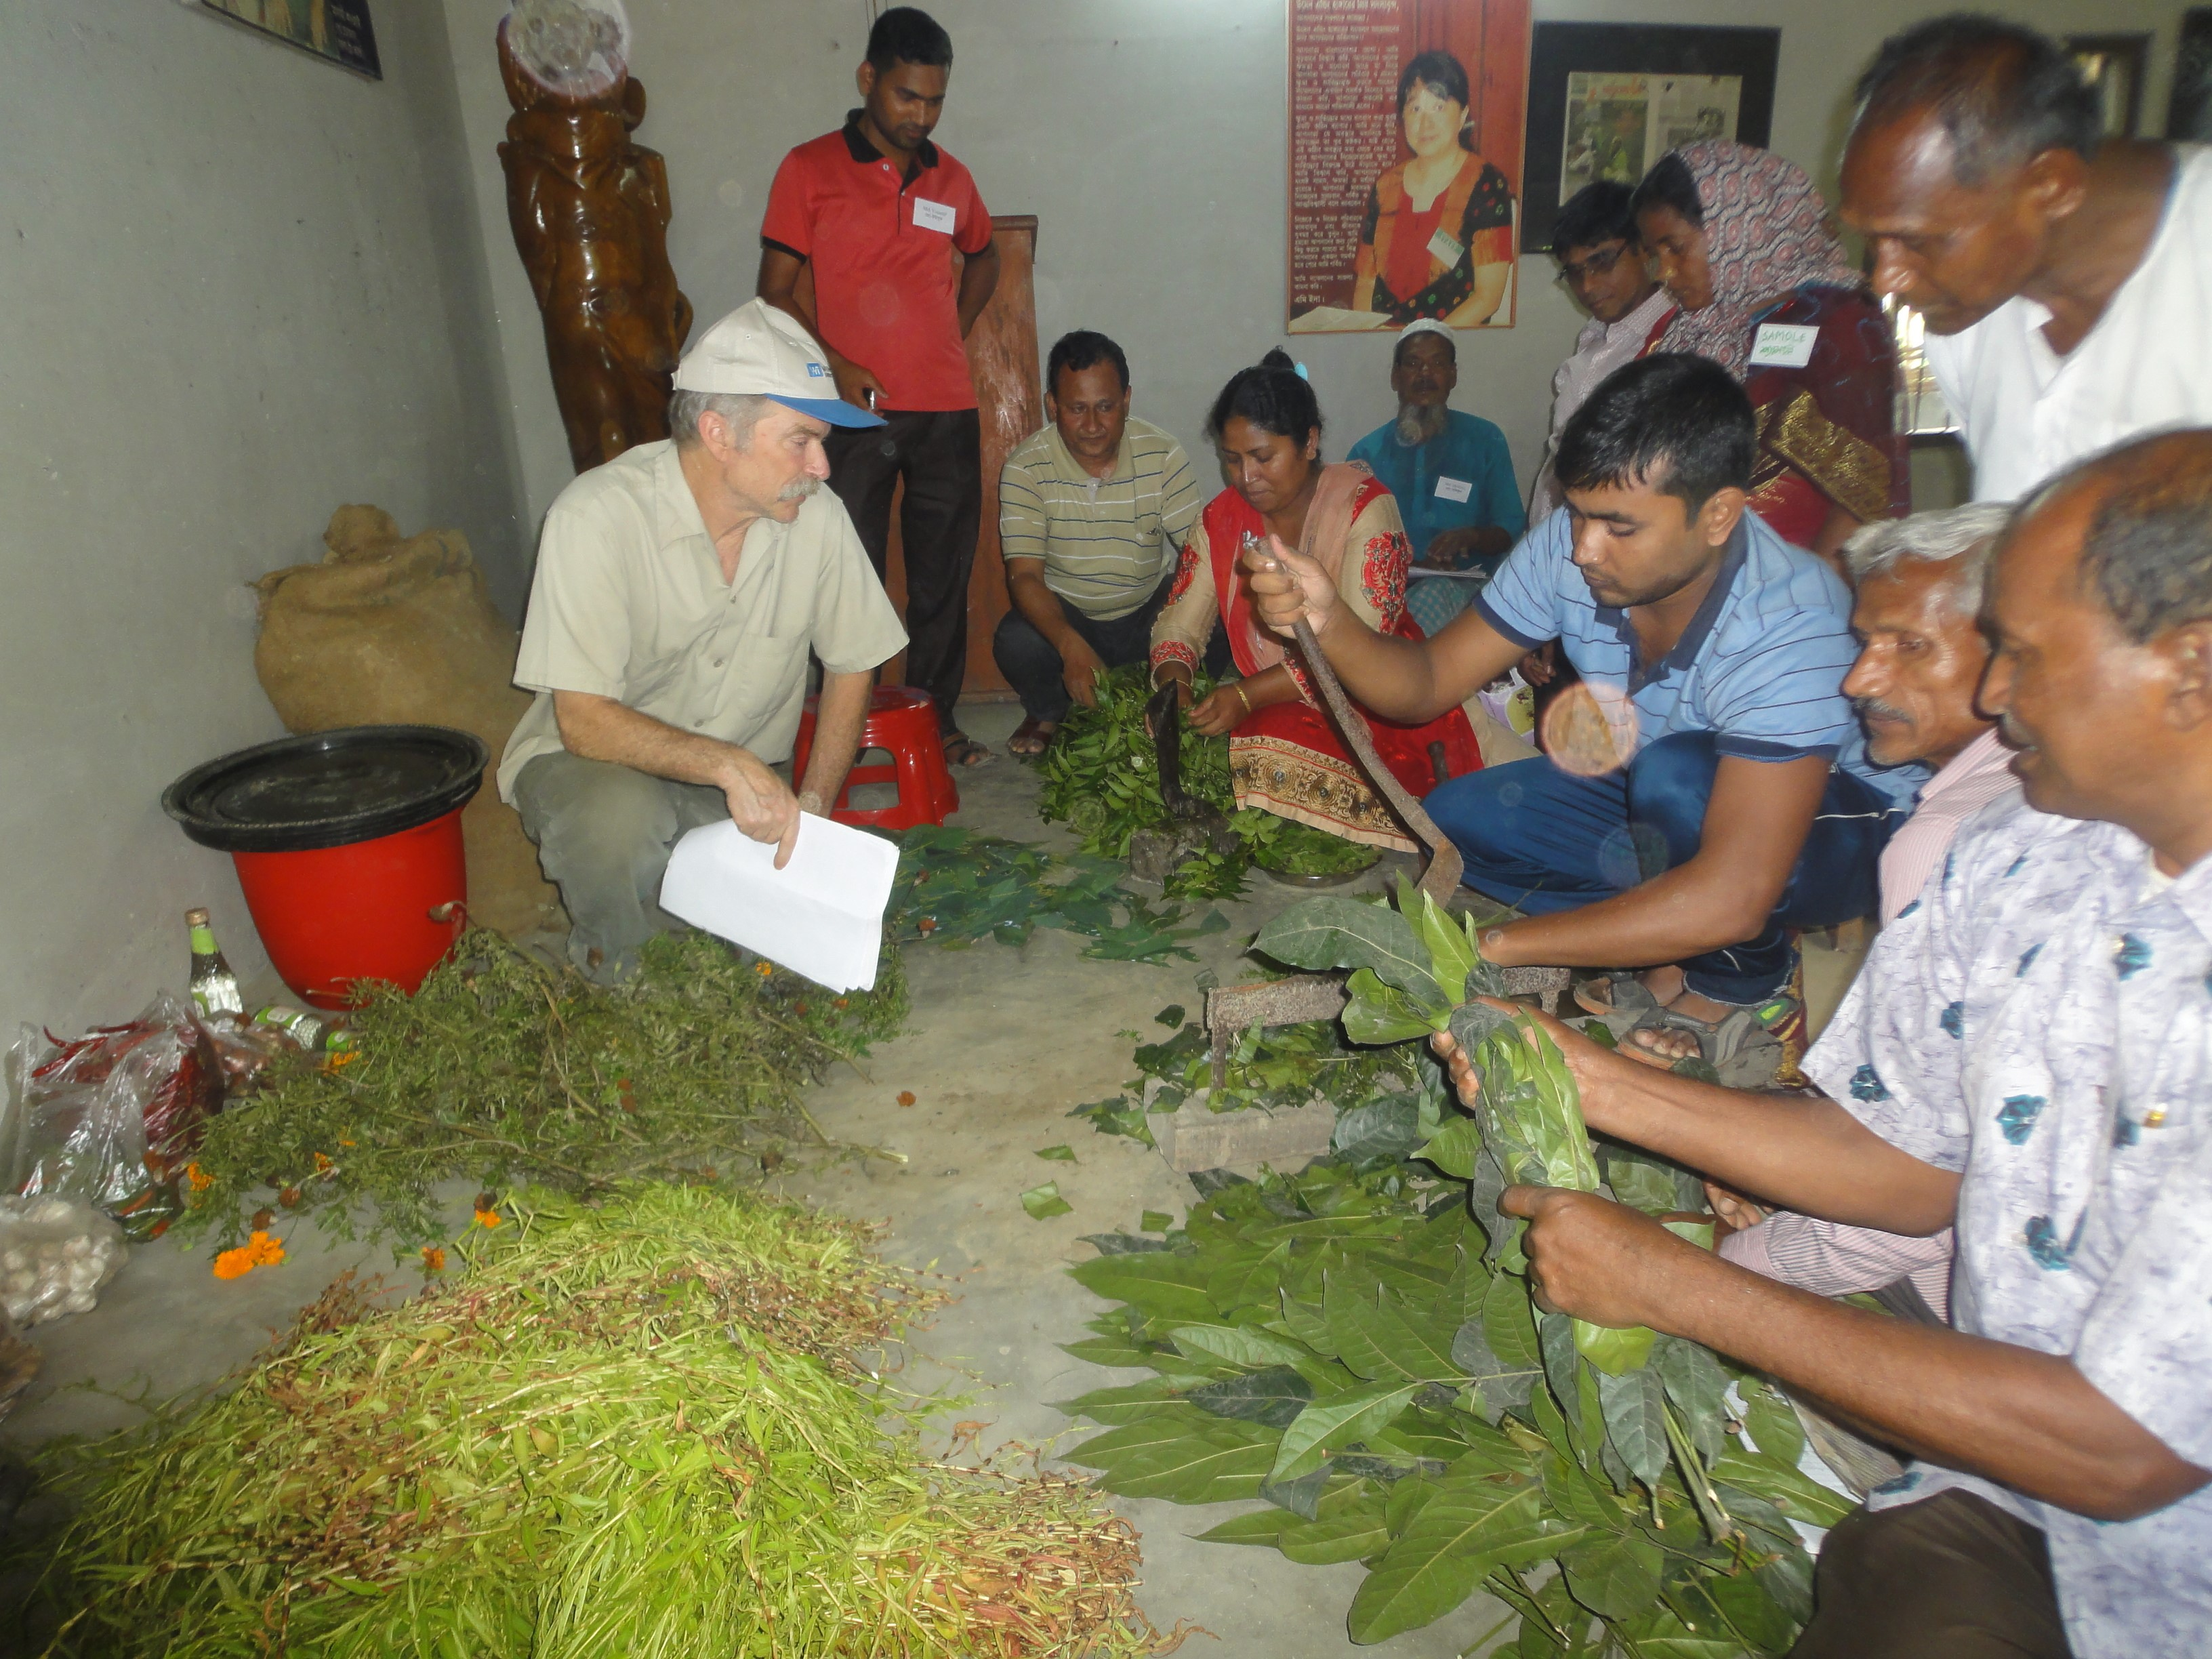 Charles Mitchell giving instructions on how to prepare an insect repellent using organic ingredients and various plant leaves to spay any kind of plant or crop to control insects.